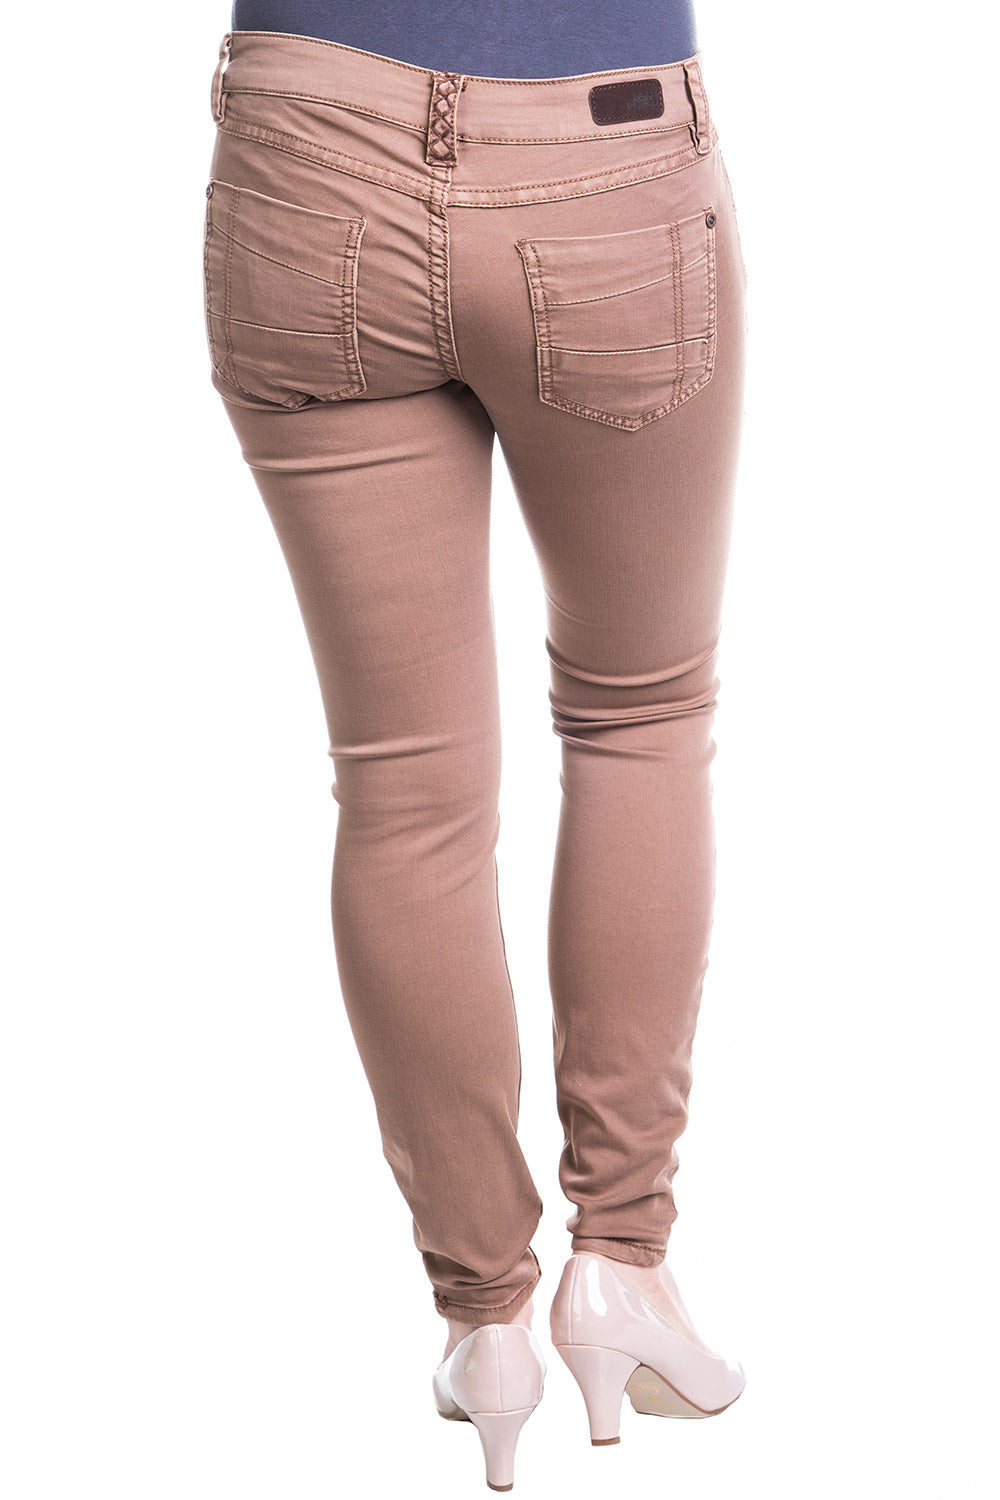 Type 2 Favorite Pants In Rosy Taupe